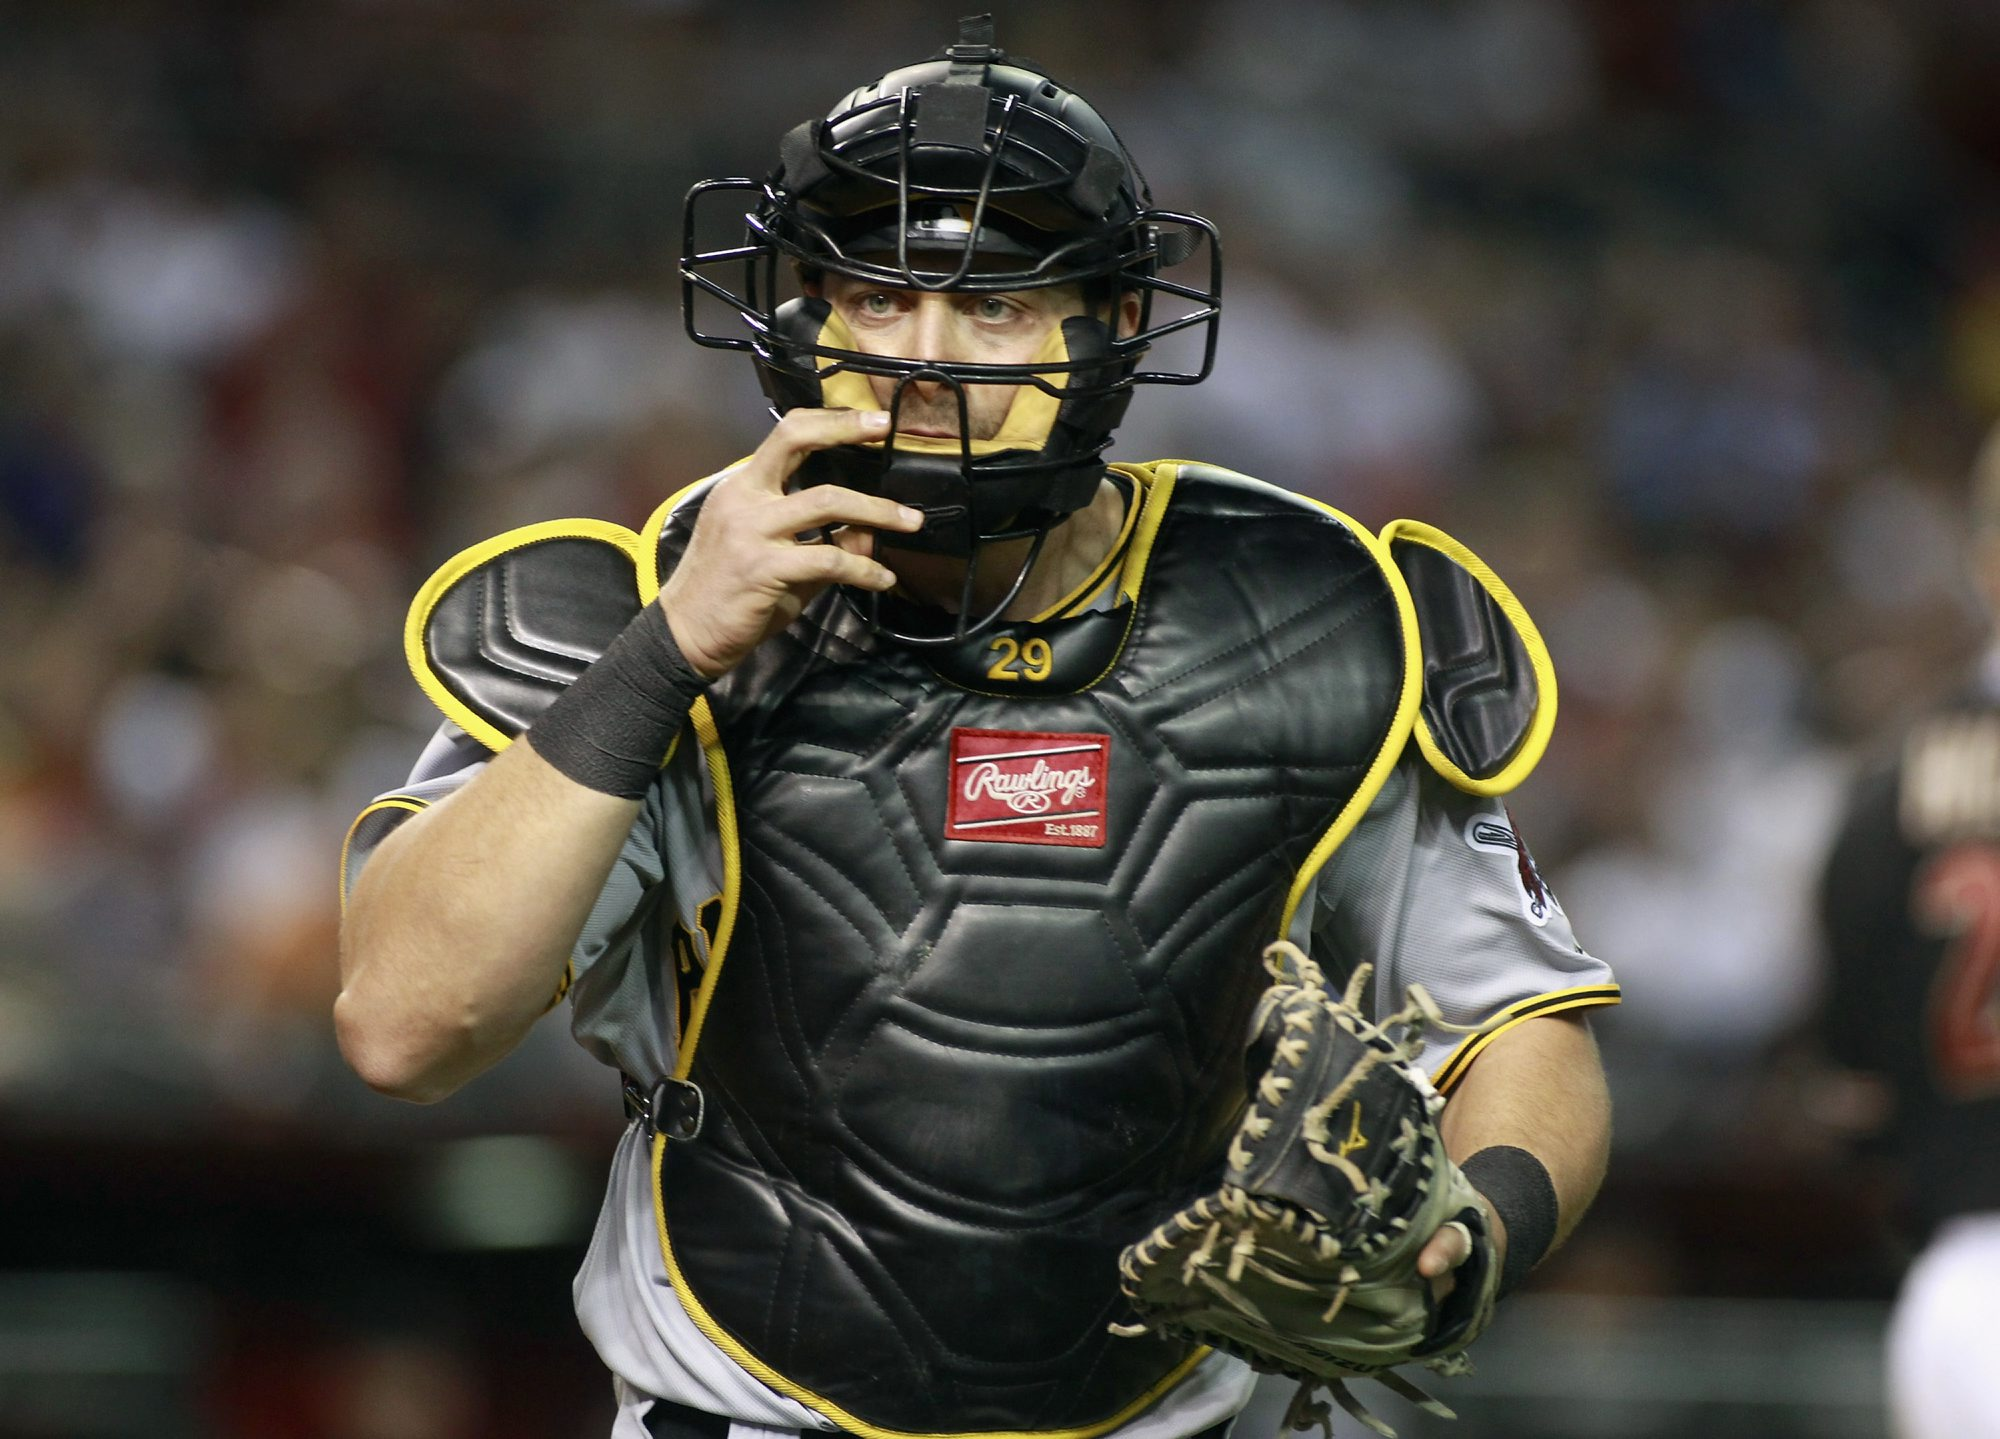 Pittsburgh Pirates catcher Francisco Cervelli has taken advantage of his opportunity to play every day.